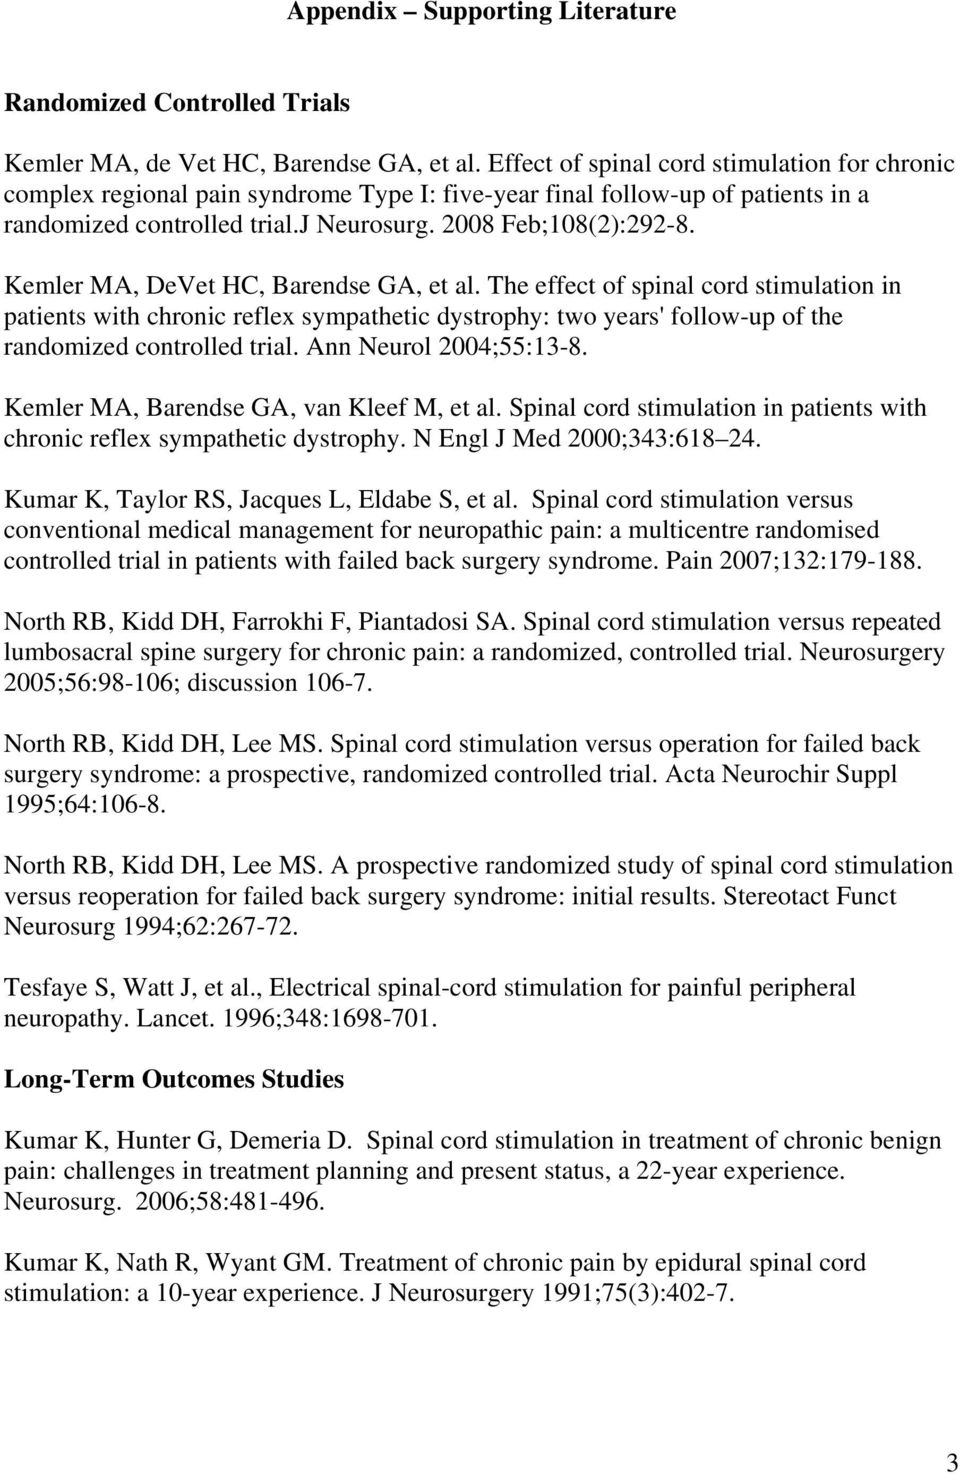 Kemler MA, DeVet HC, Barendse GA, et al. The effect of spinal cord stimulation in patients with chronic reflex sympathetic dystrophy: two years' follow-up of the randomized controlled trial.